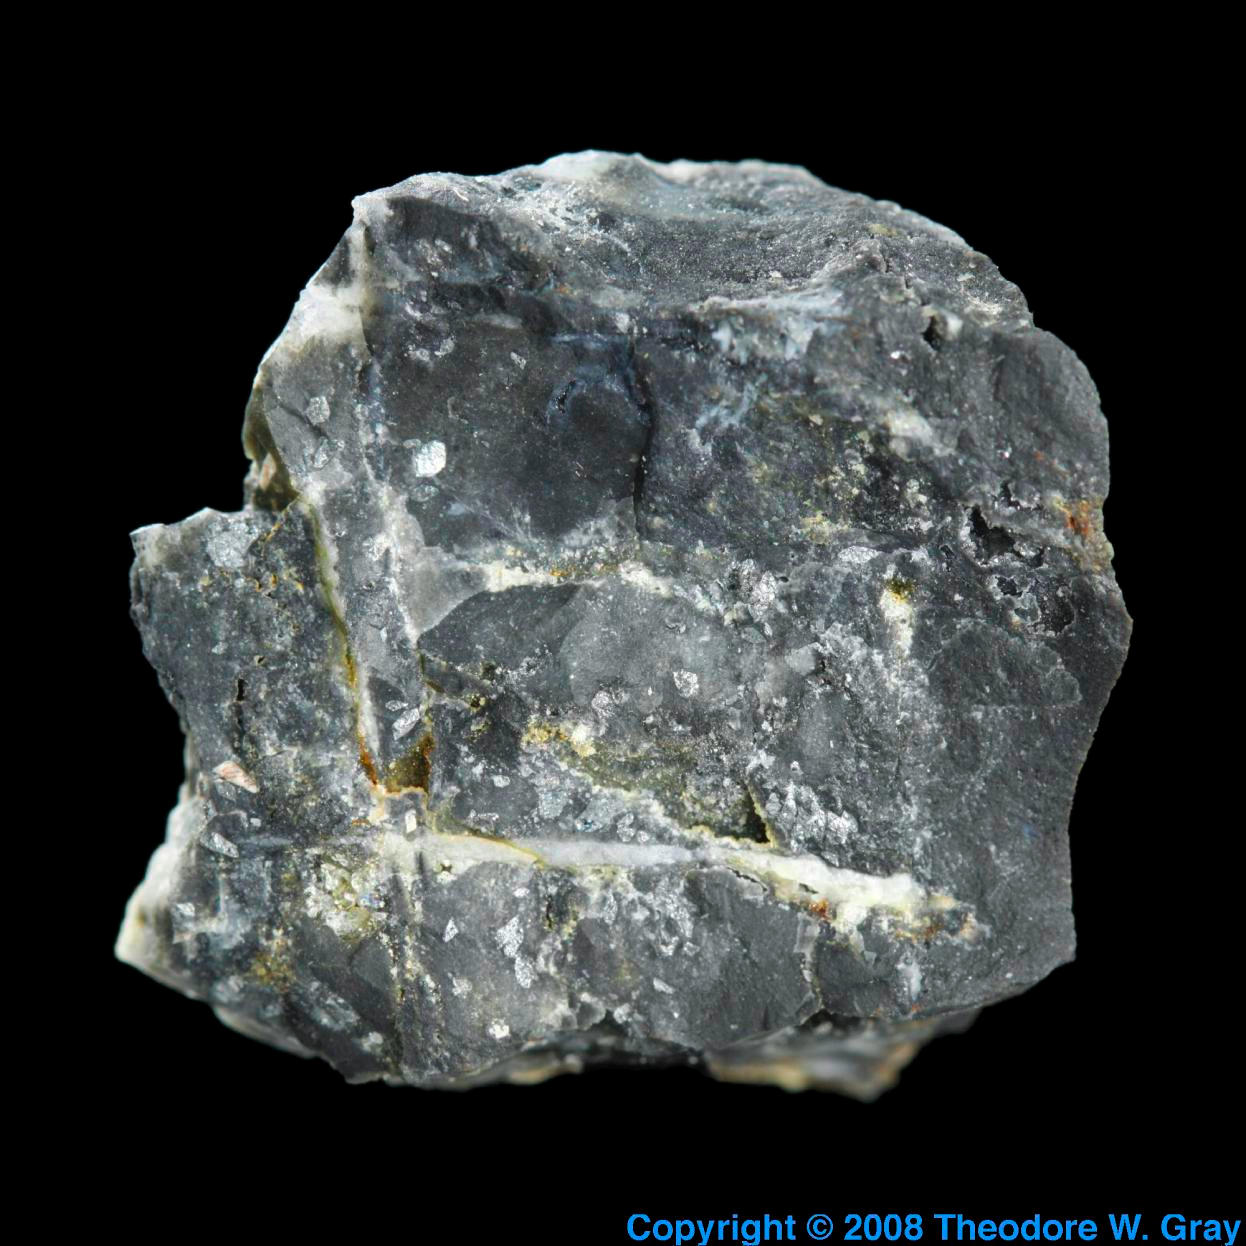 How Do We Use Minerals As A Natural Resource